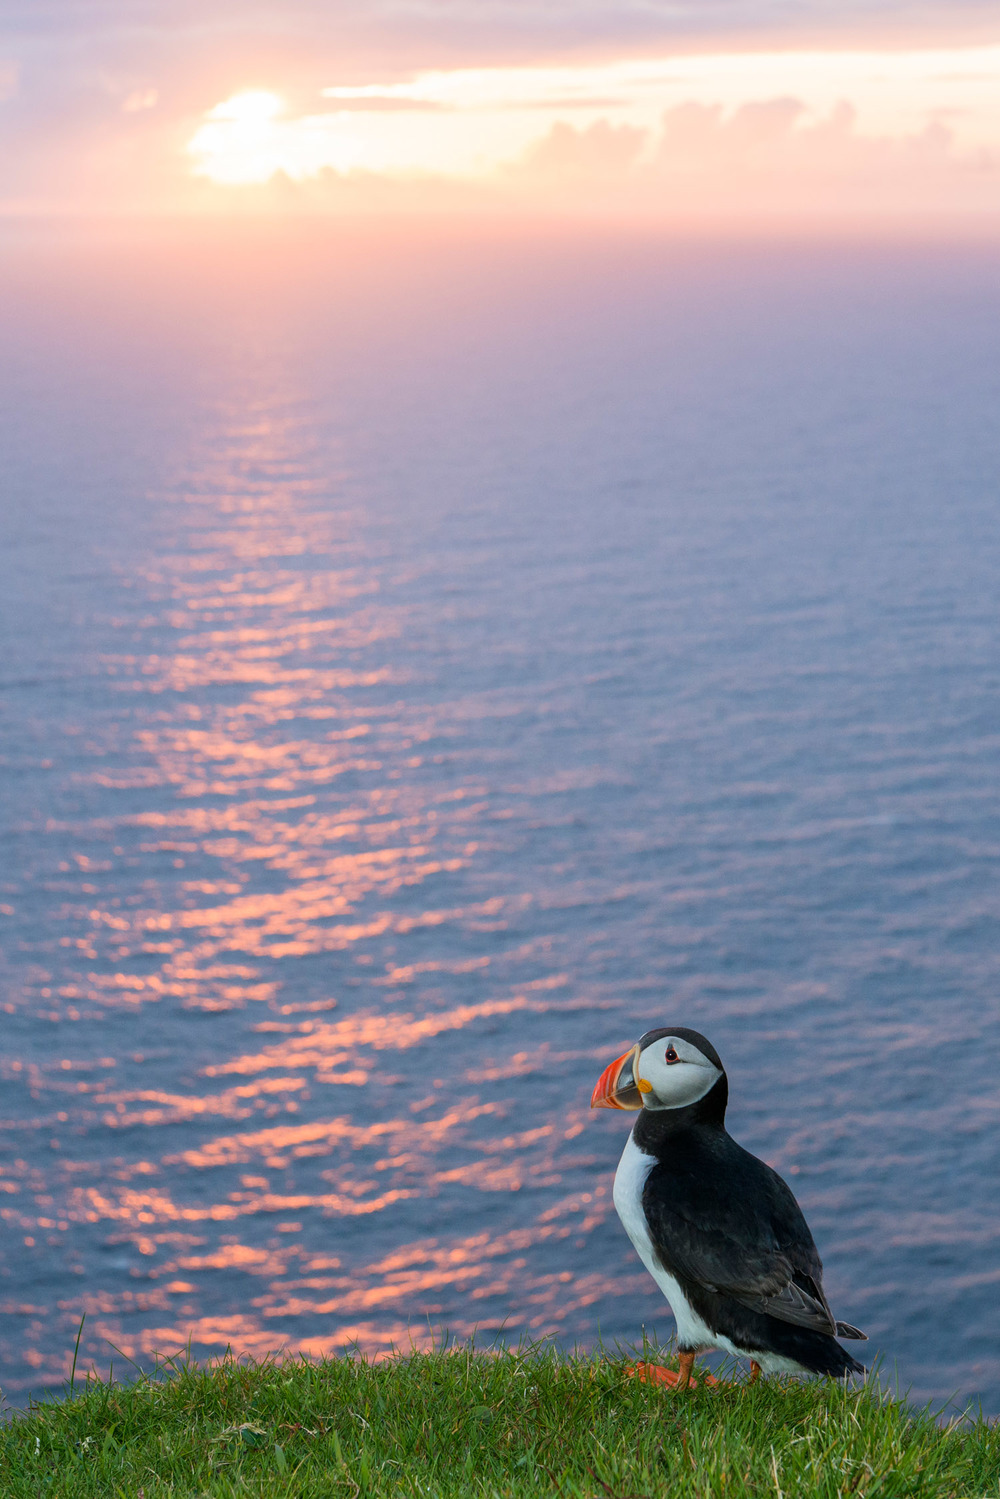 Atlantic puffin at clifftop edge at sunset, Hermaness National Nature Reserve, Unst, Shetland Islands, Scotland